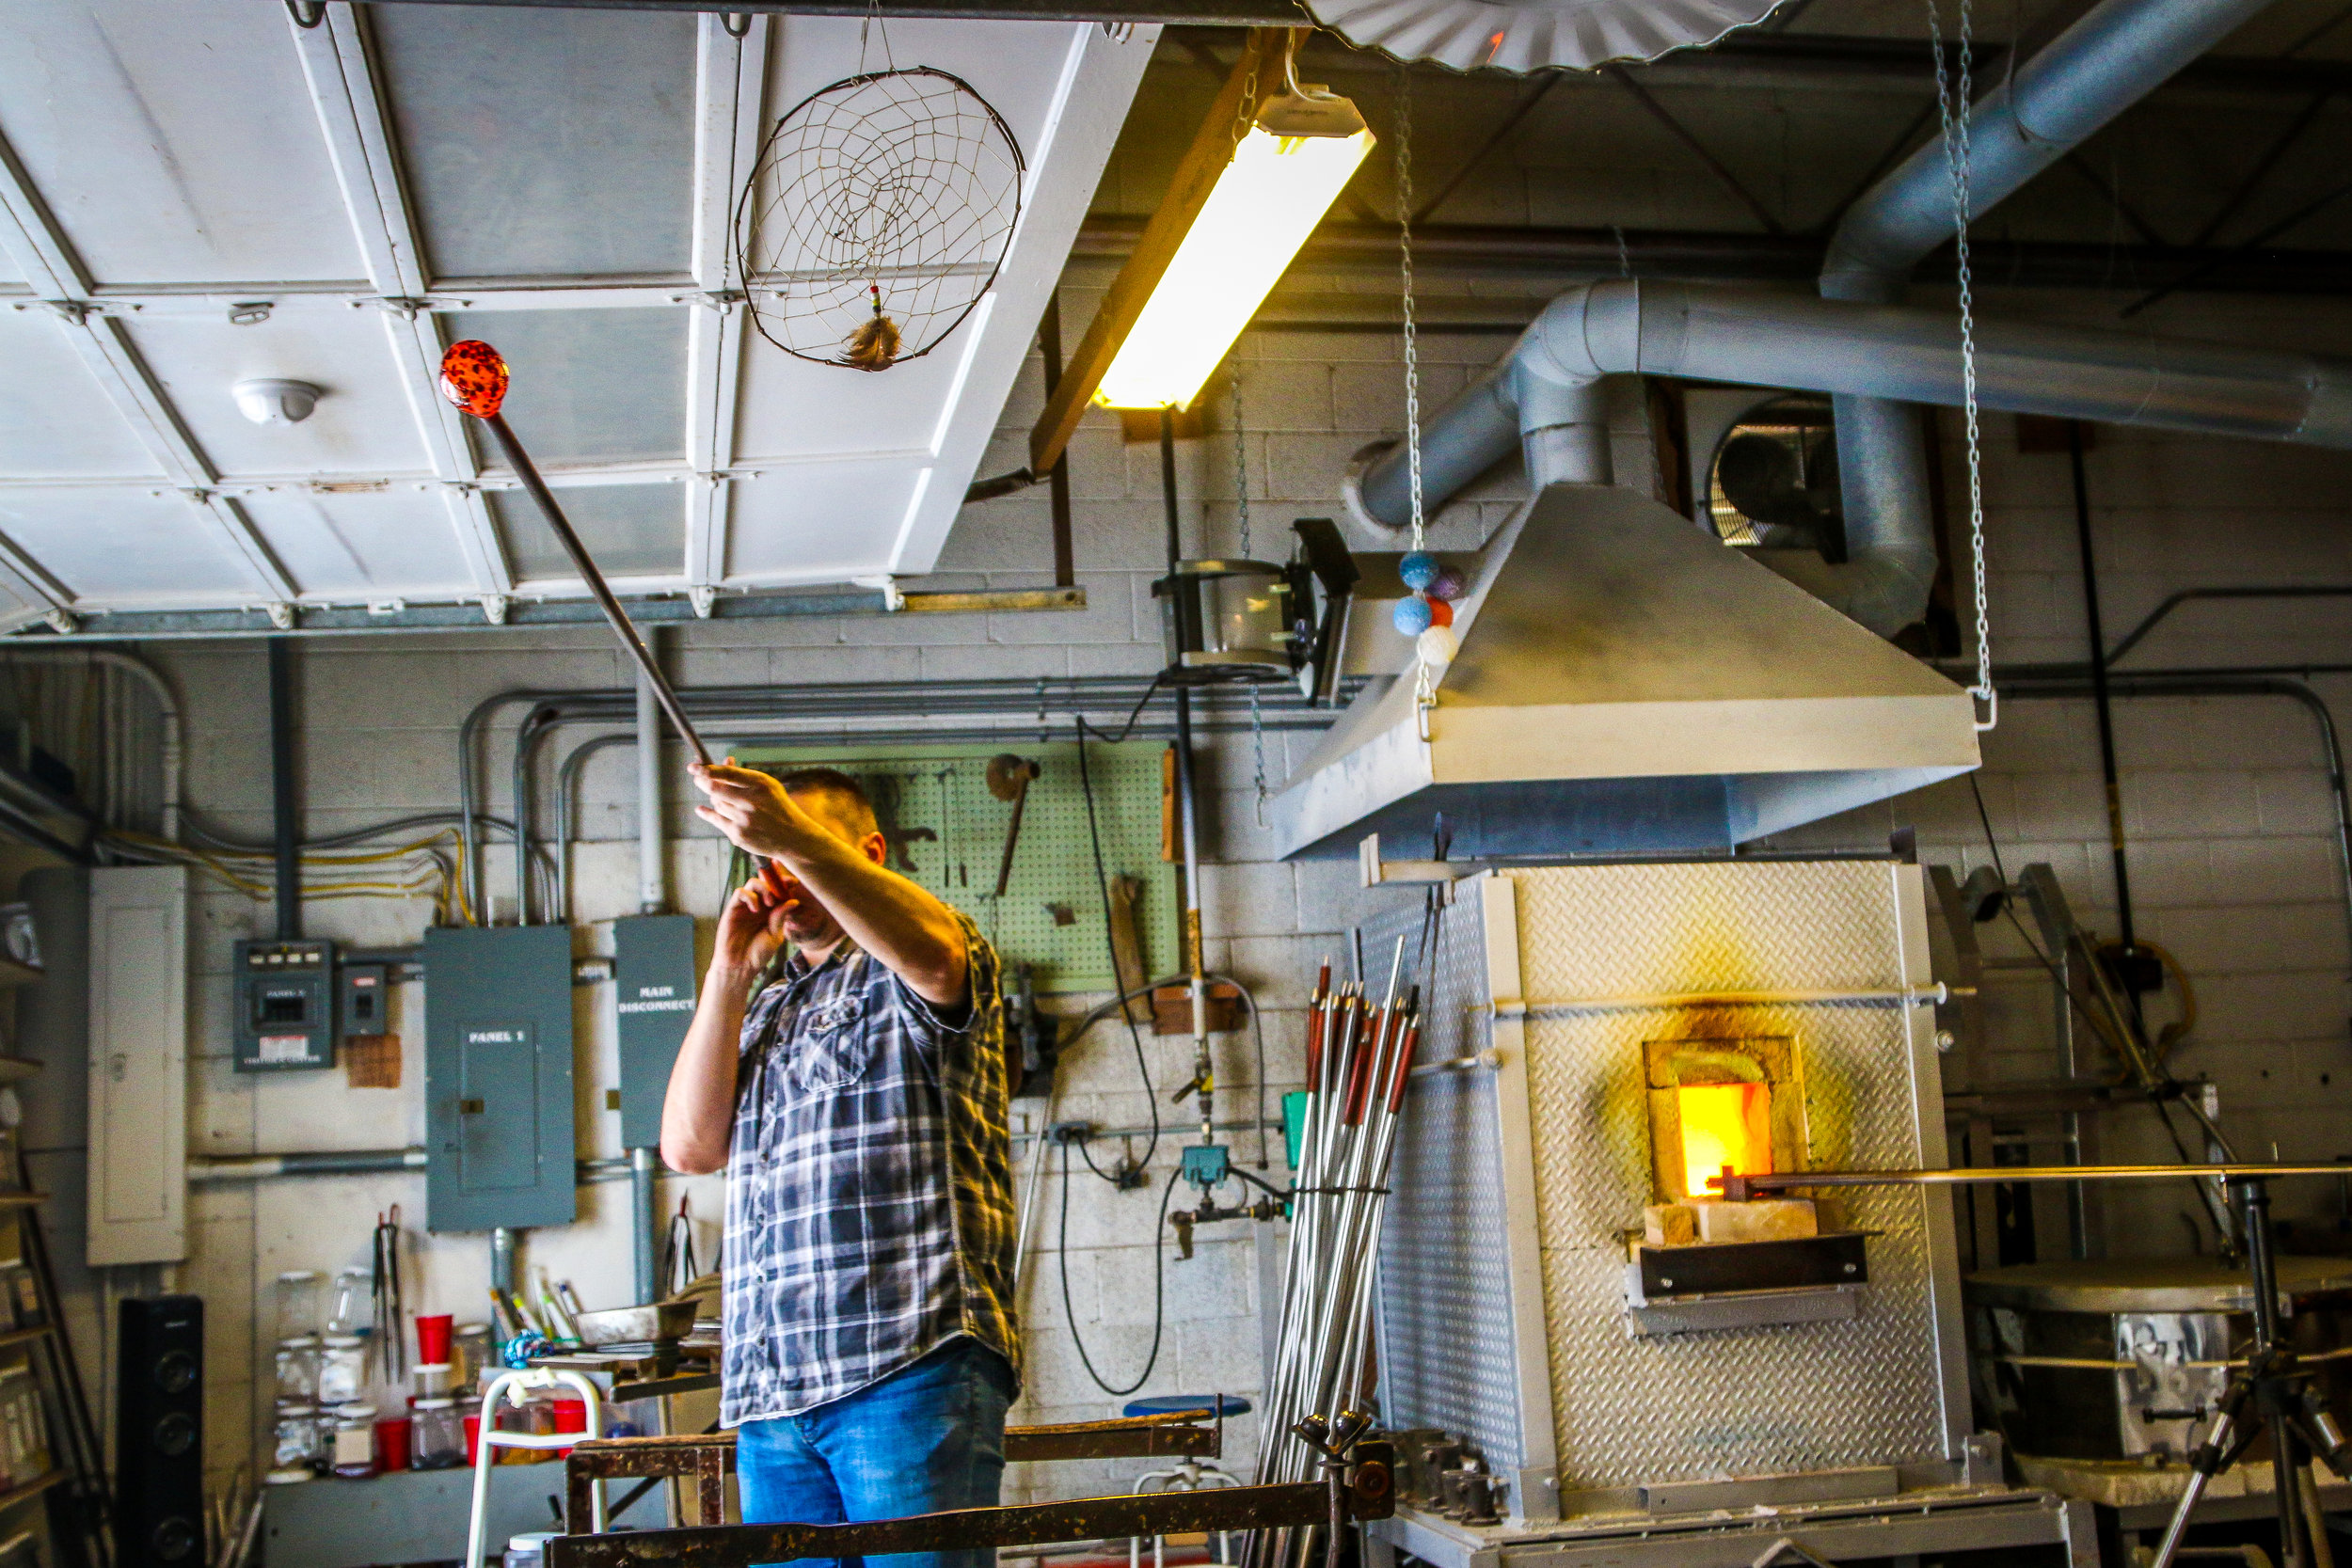 Todd Giving a Glass-Blowing Demonstration